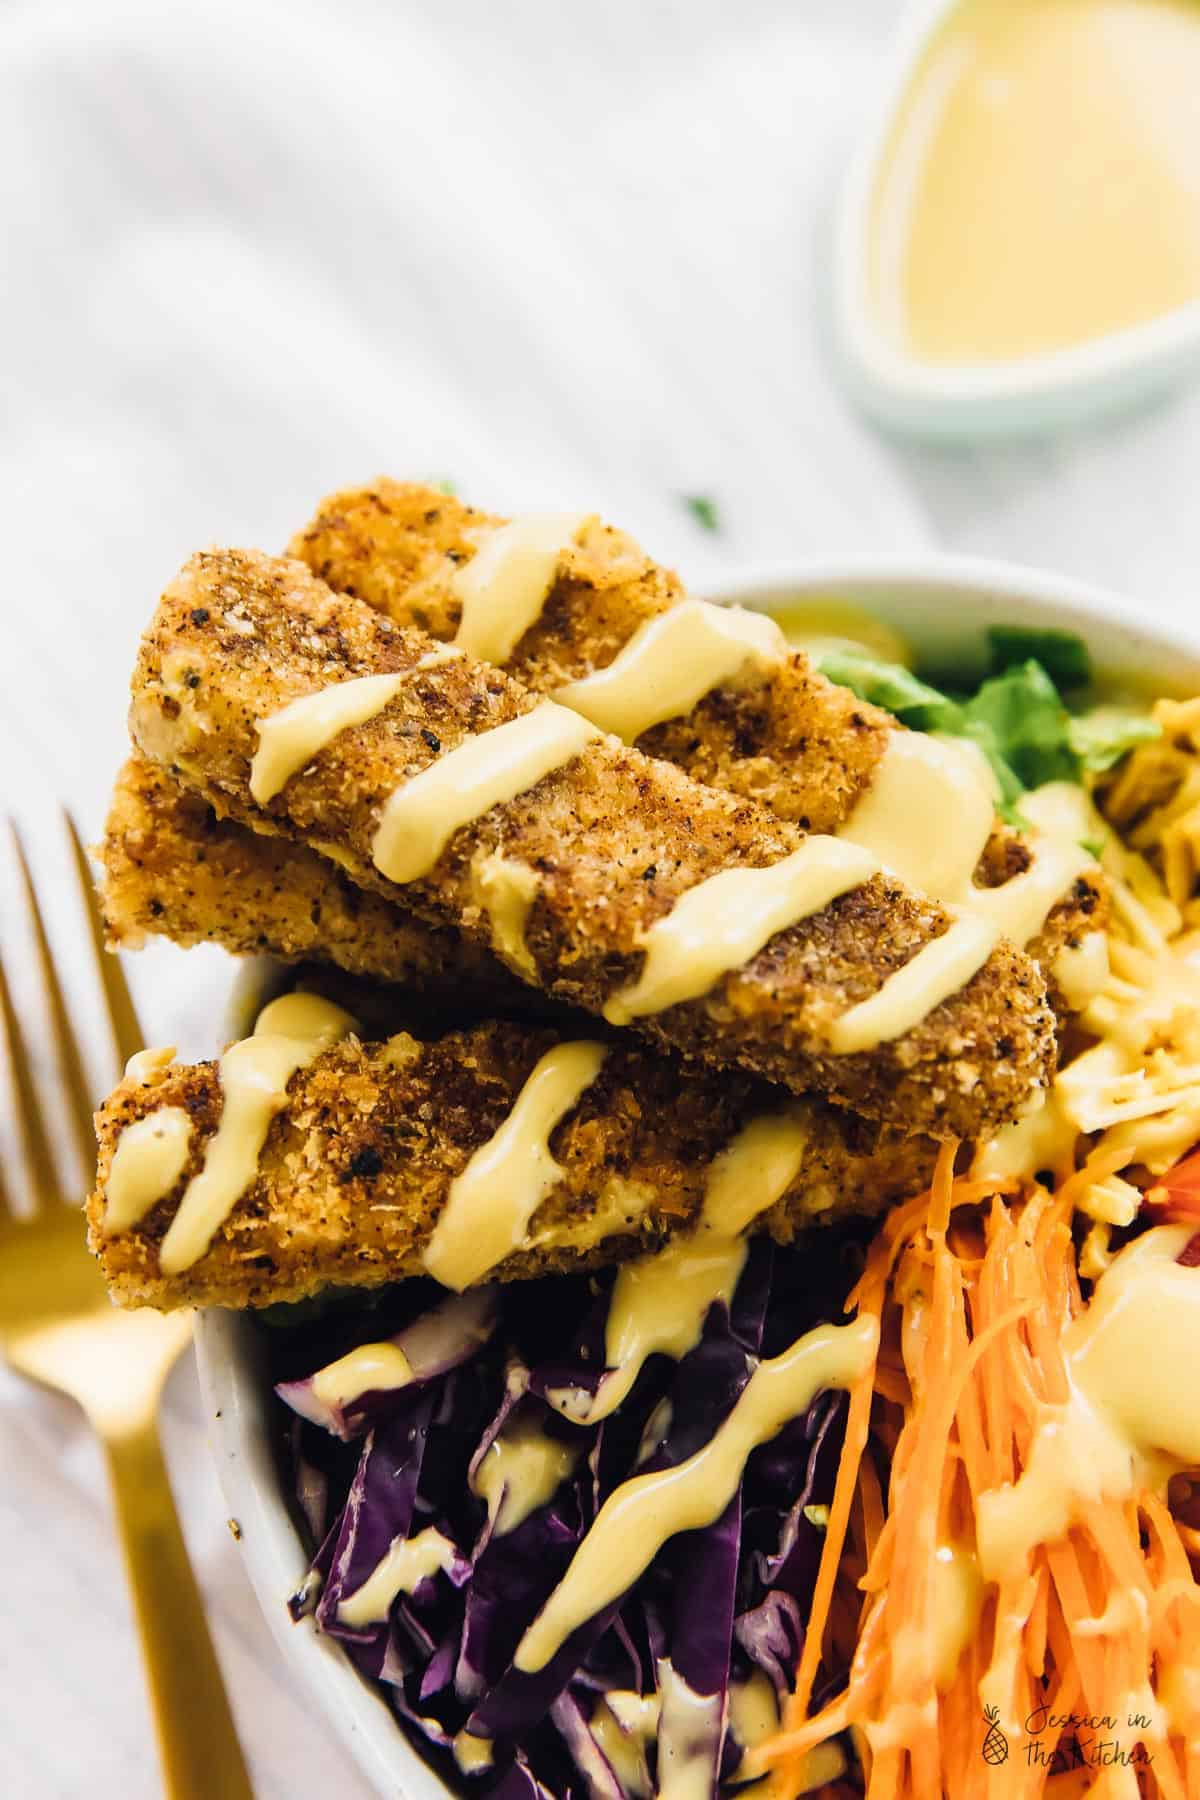 This Vegan Crispy Cajun Fried Chicken Salad with Honey Mustard Dressing is the ultimate healthy indulgent salad! It's topped with a vegan version of Honey Mustard Dressing and SO crave-worthy! via https://jessicainthekitchen.com